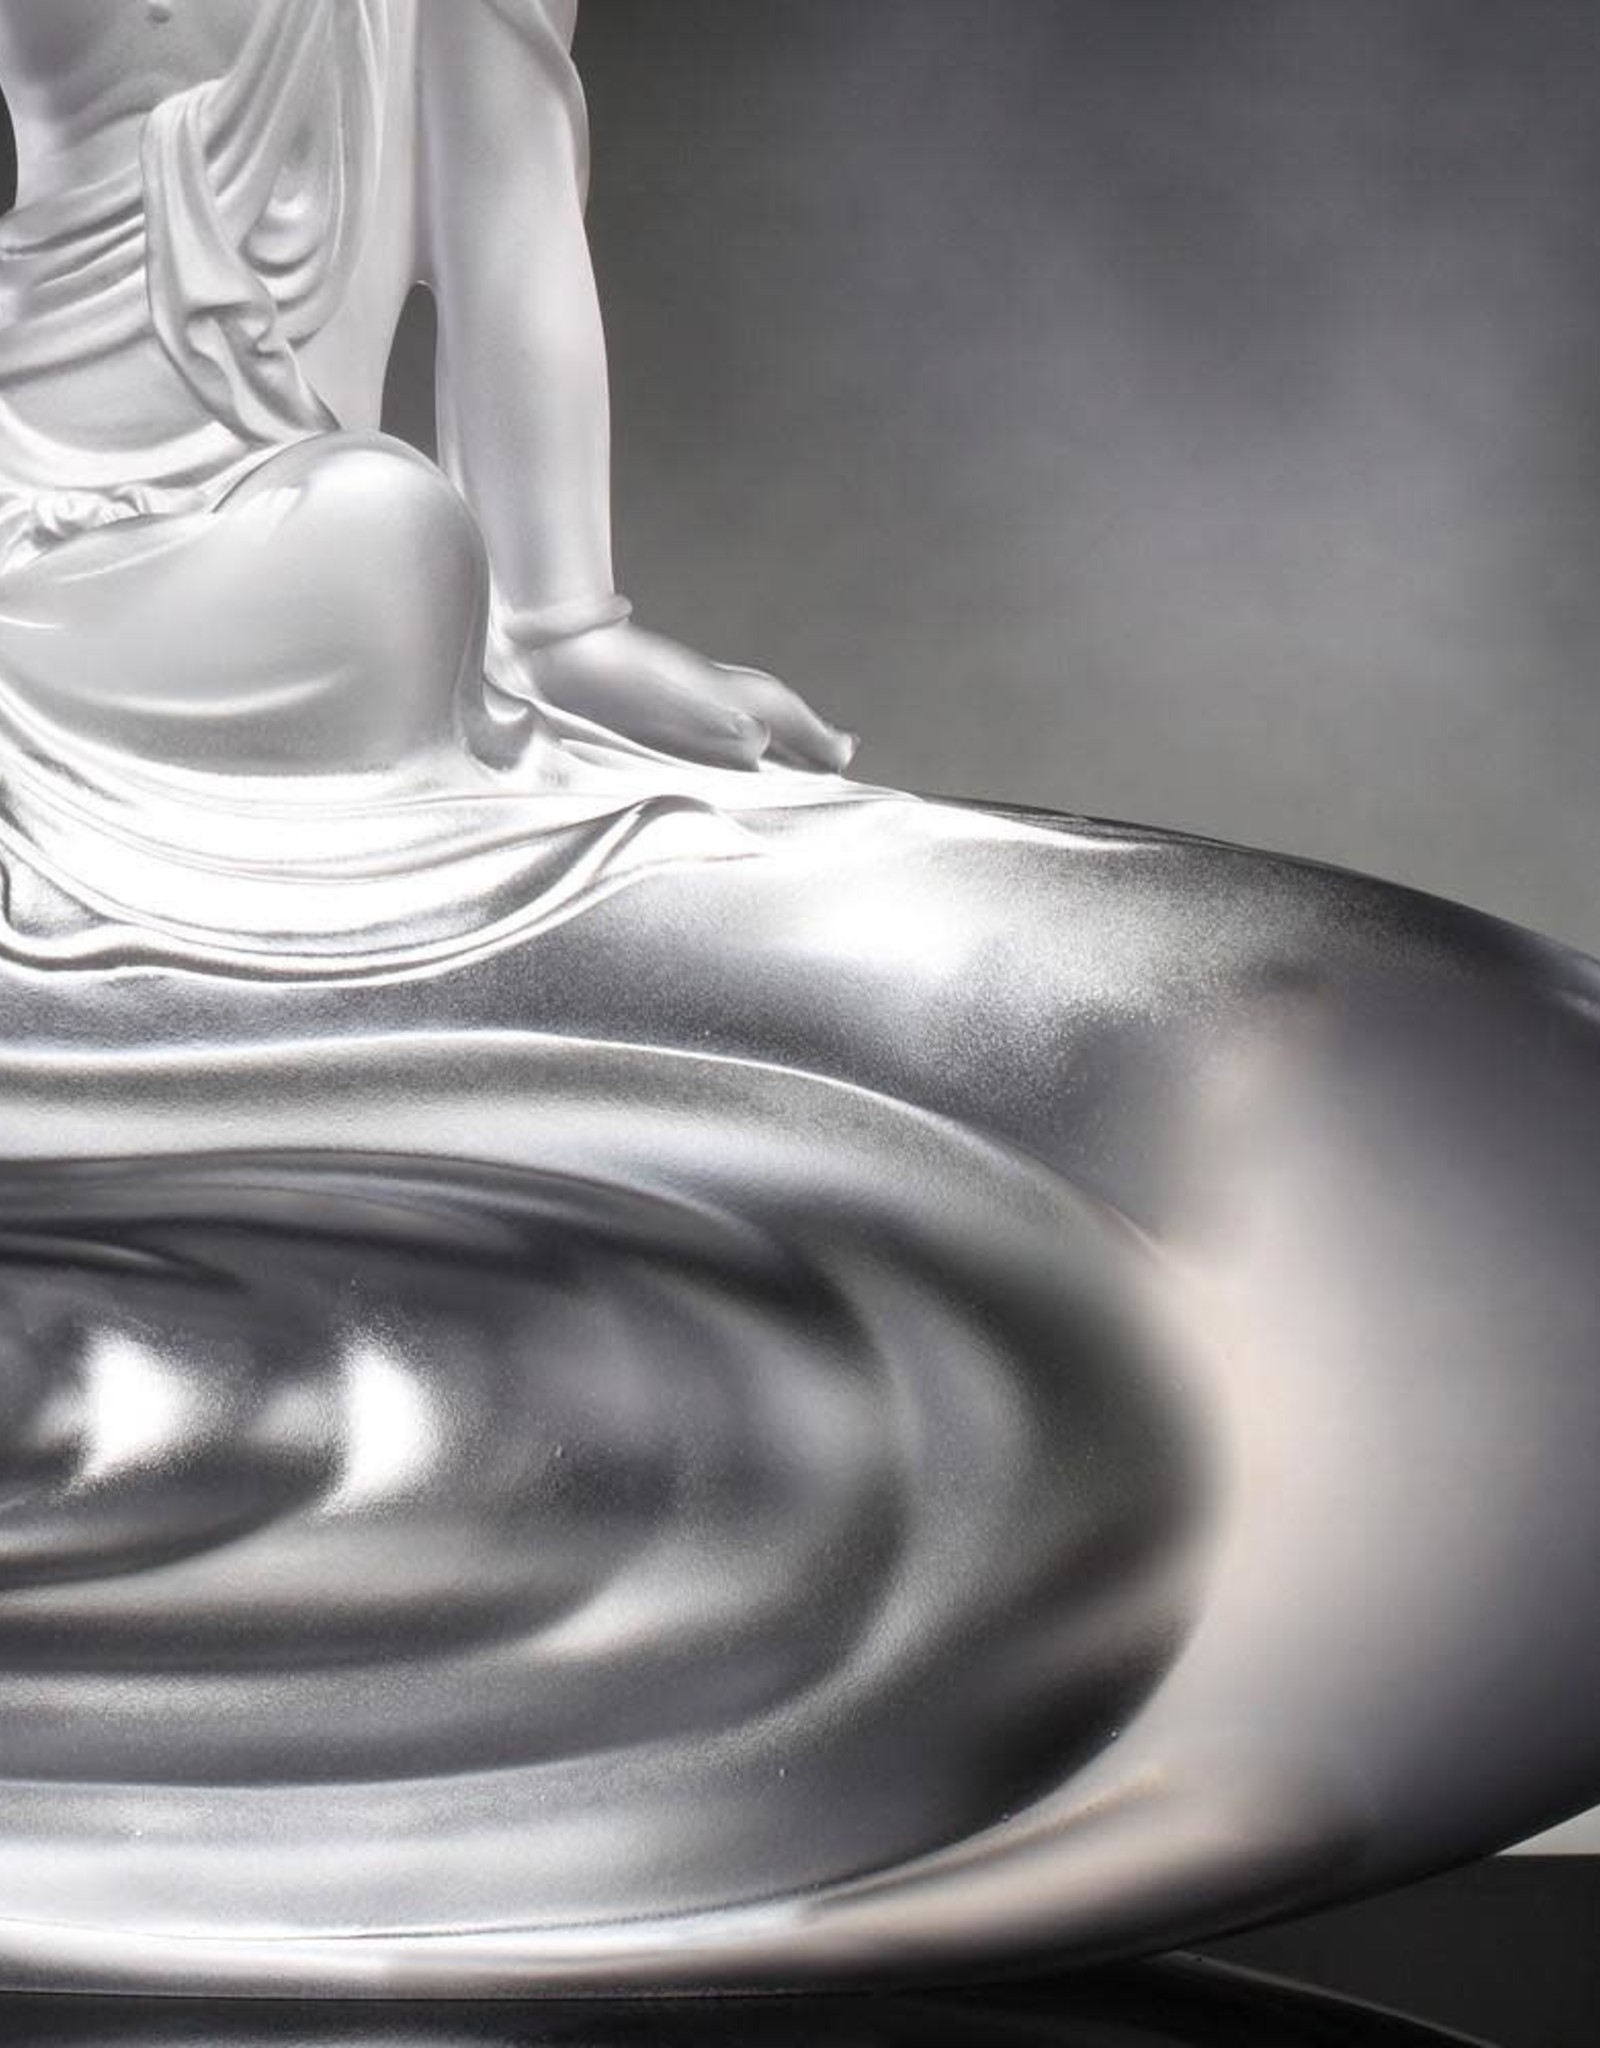 """LIULI Crystal Art Crystal Buddha """"Light Exists Because of Love - Heart of Guanyin"""" (Limited Edition)"""